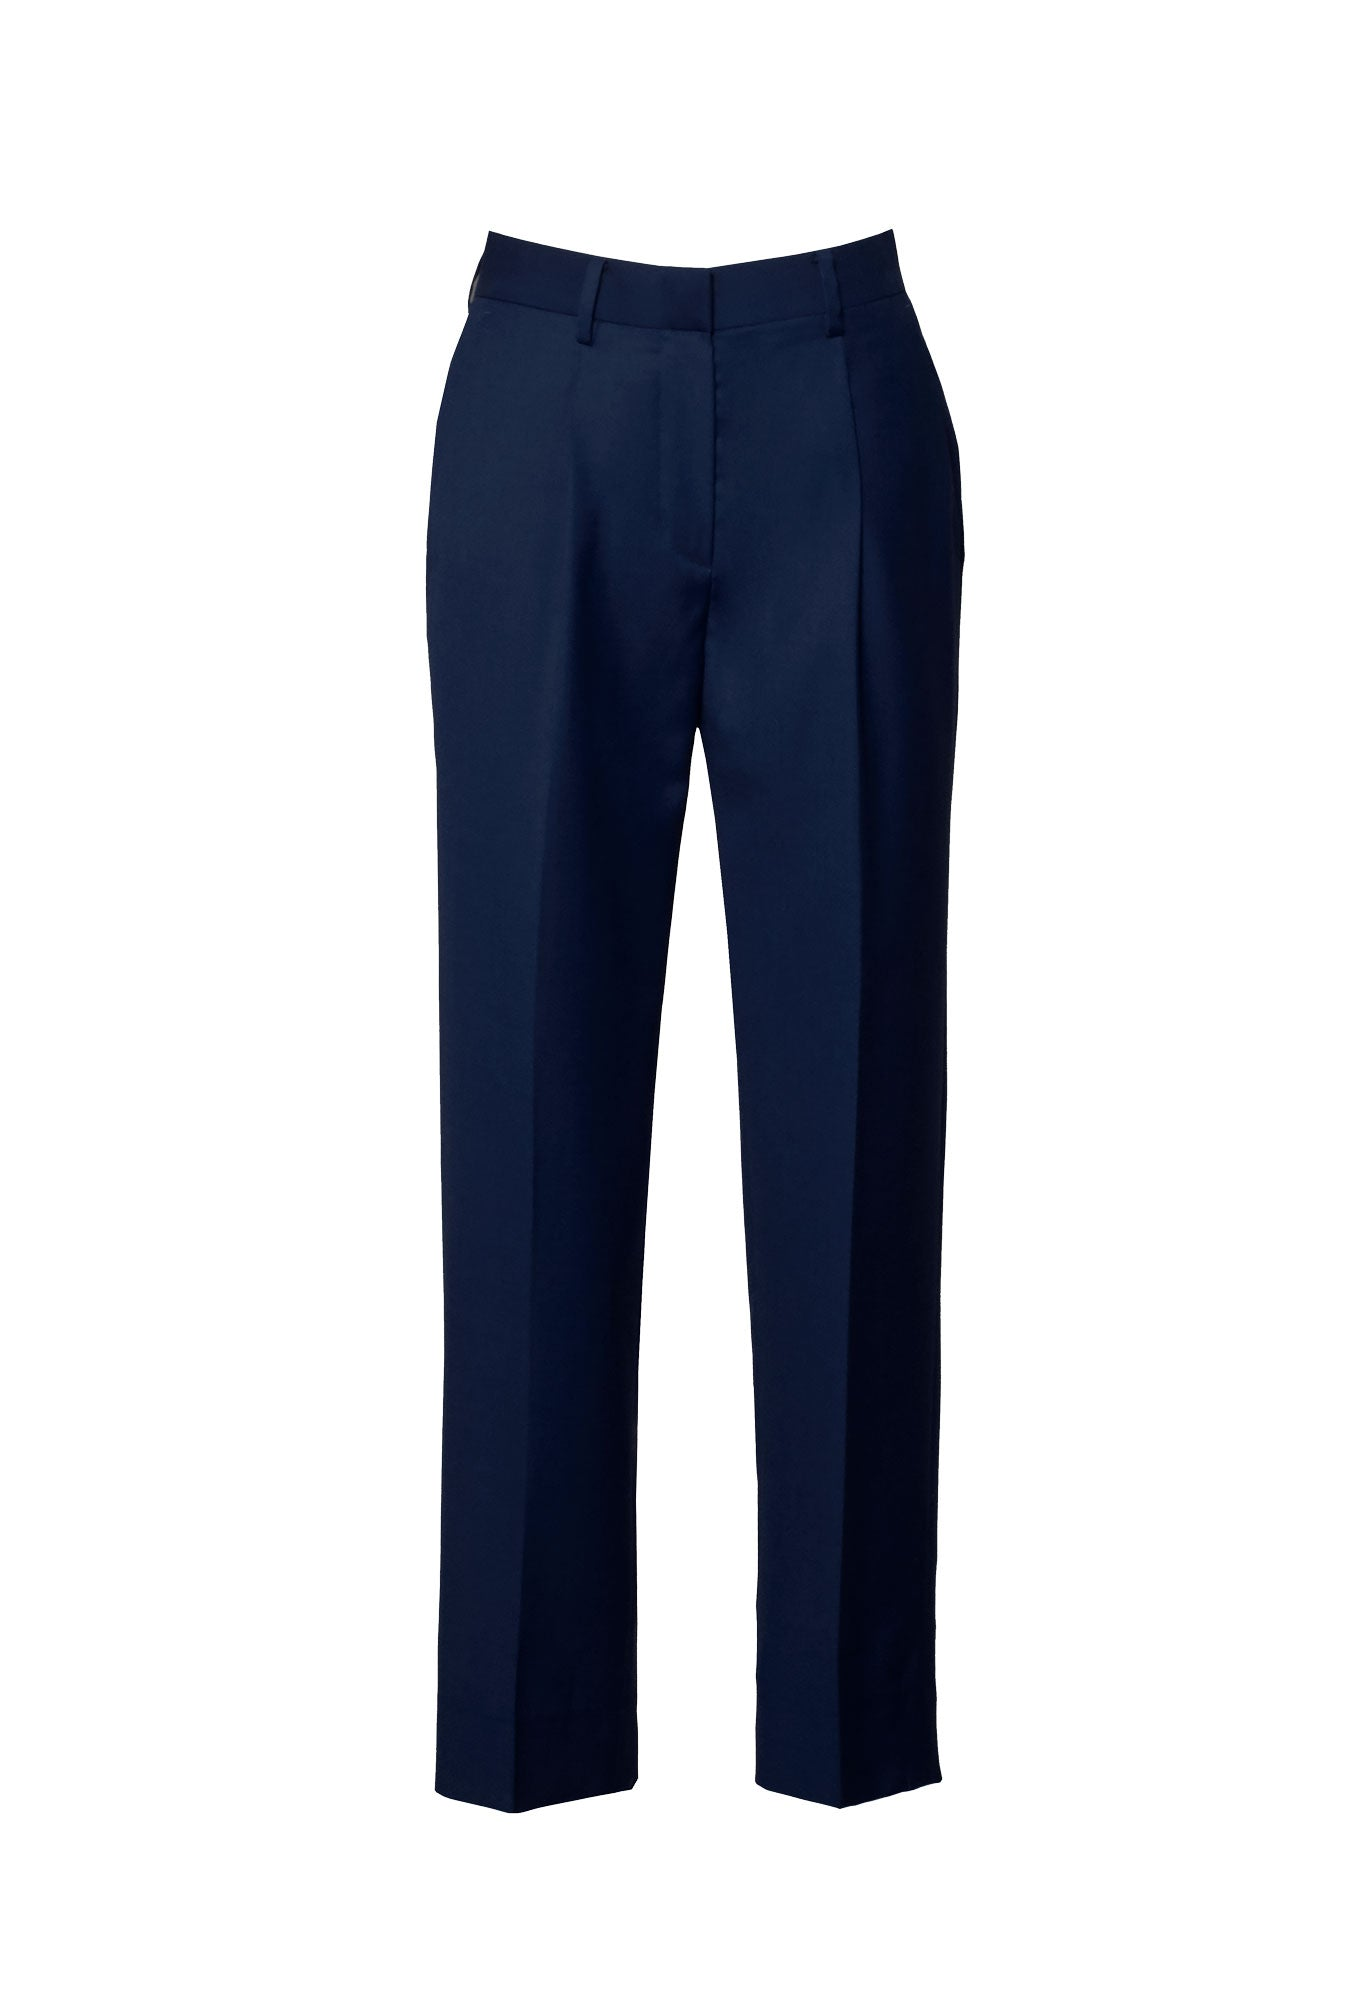 Partner Trouser - Navy